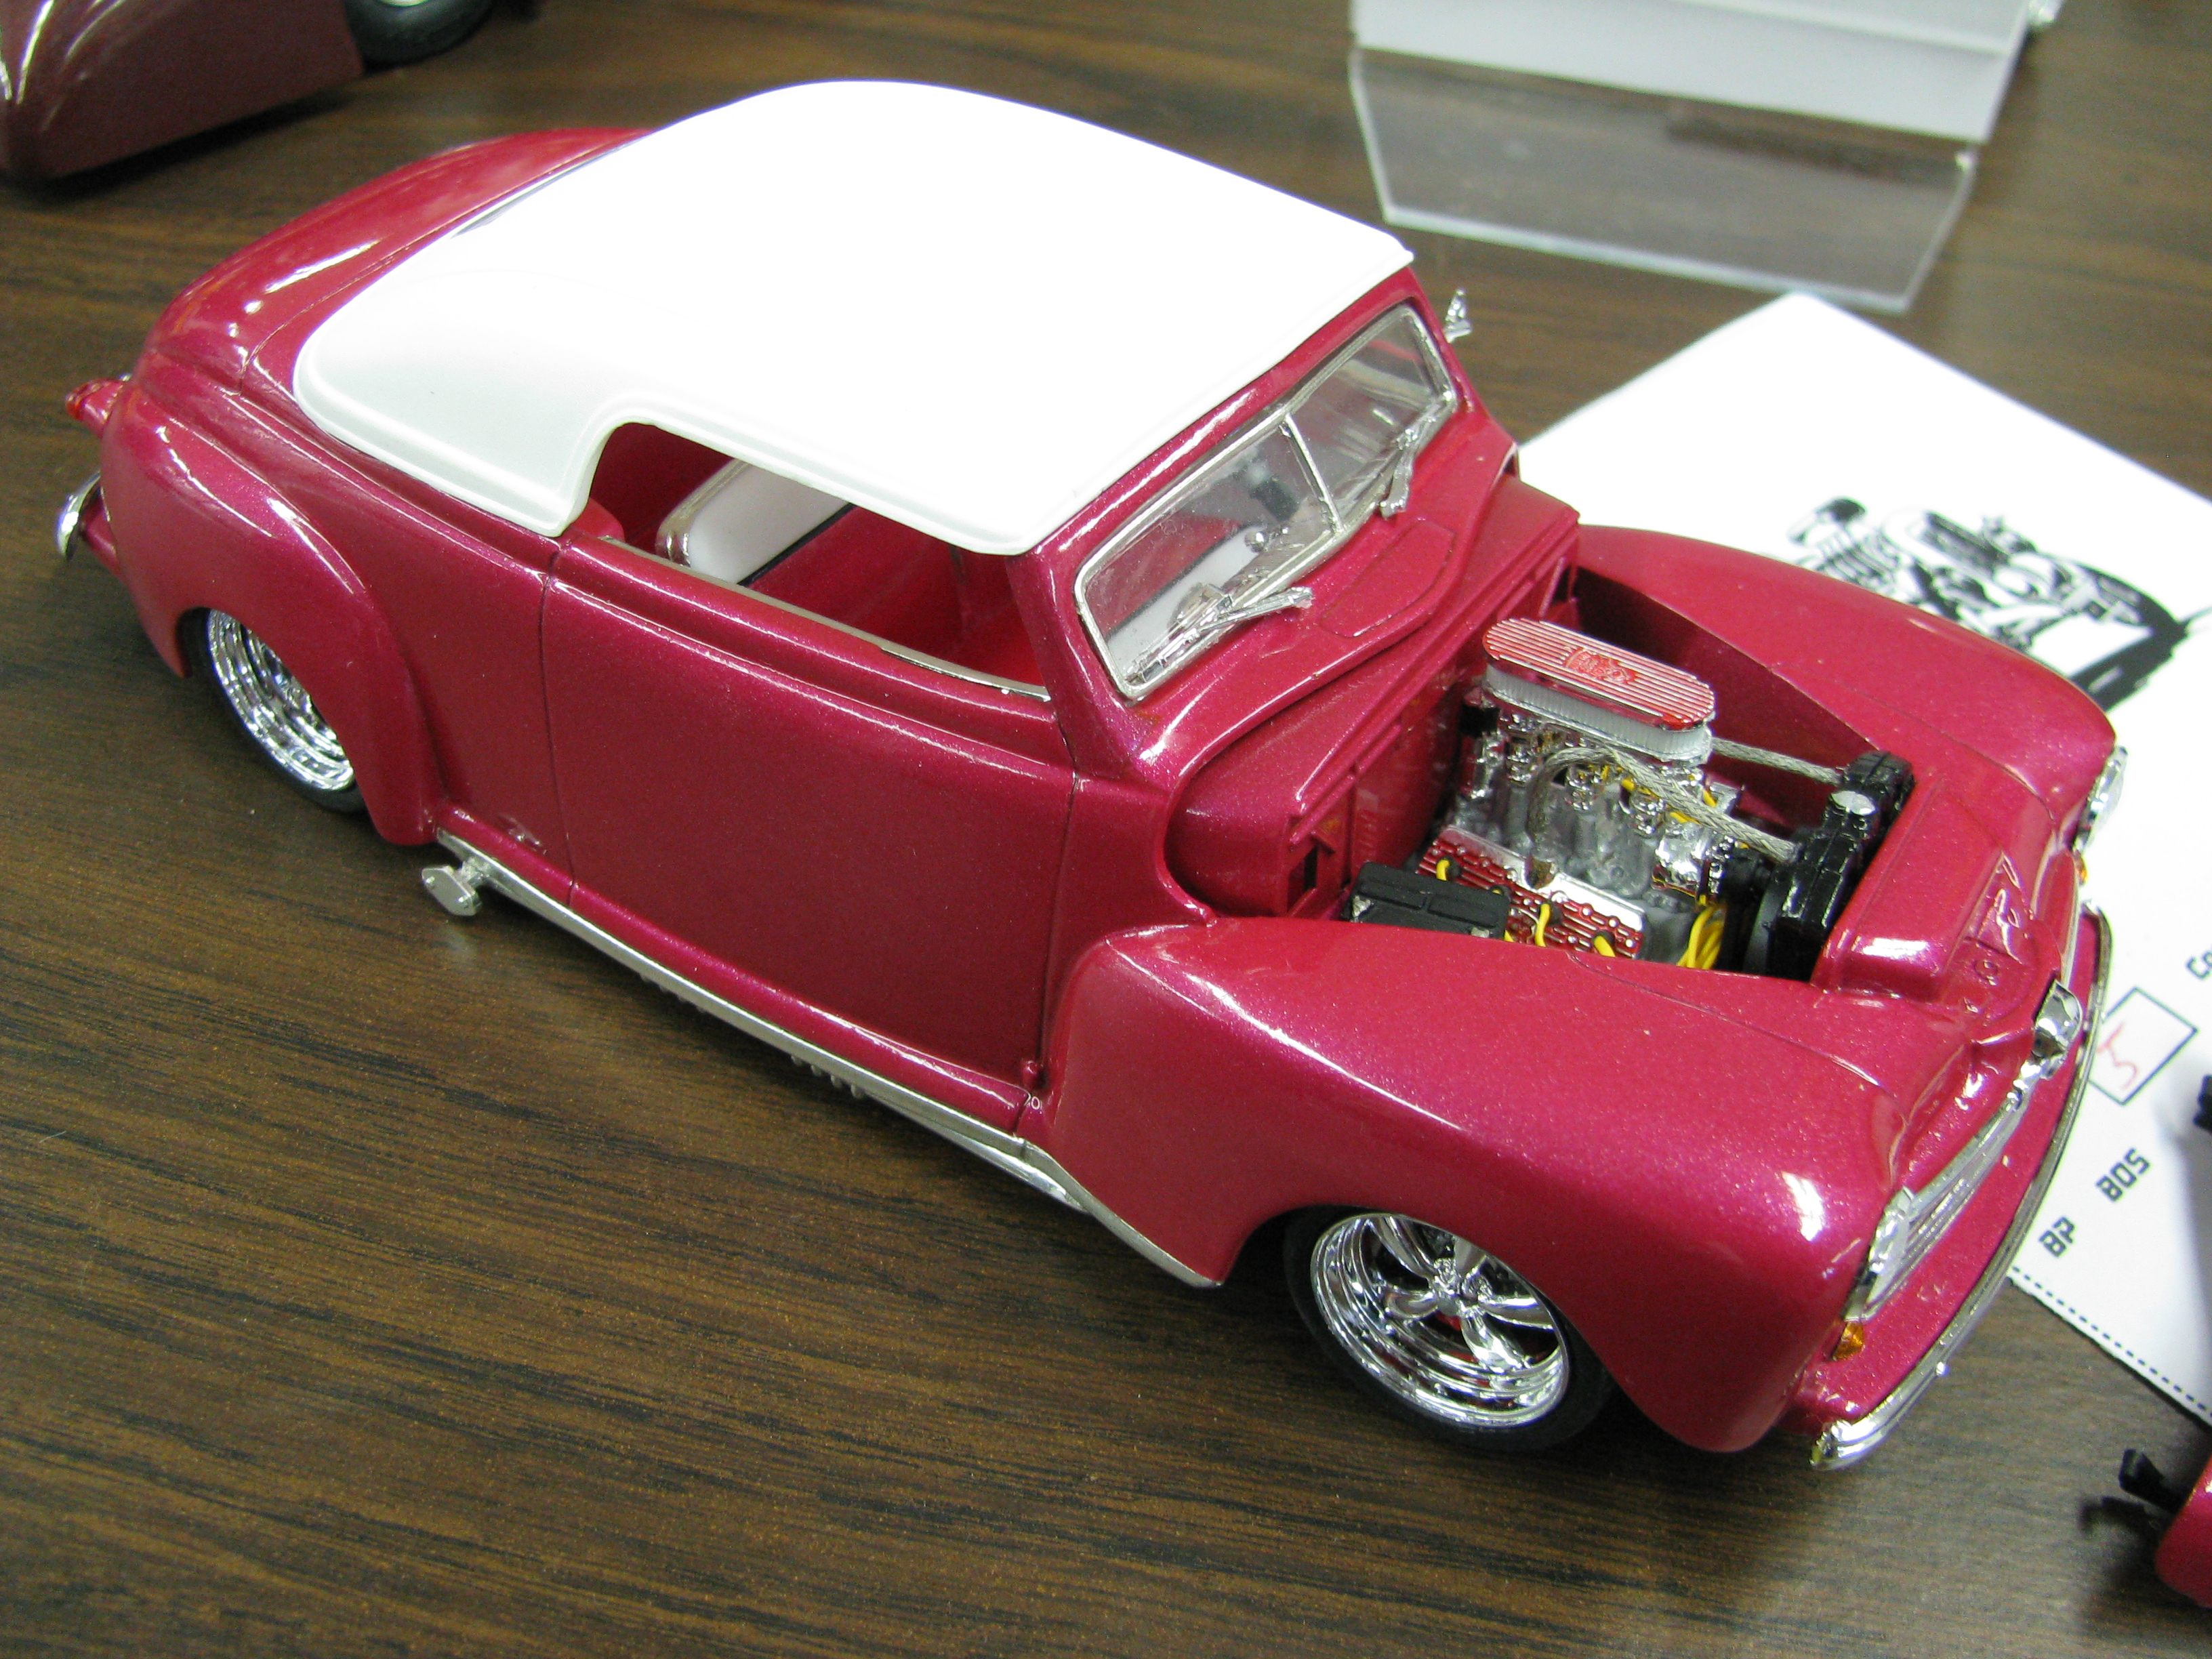 1940's Ford Hot Rod Photographs - The Crittenden Automotive